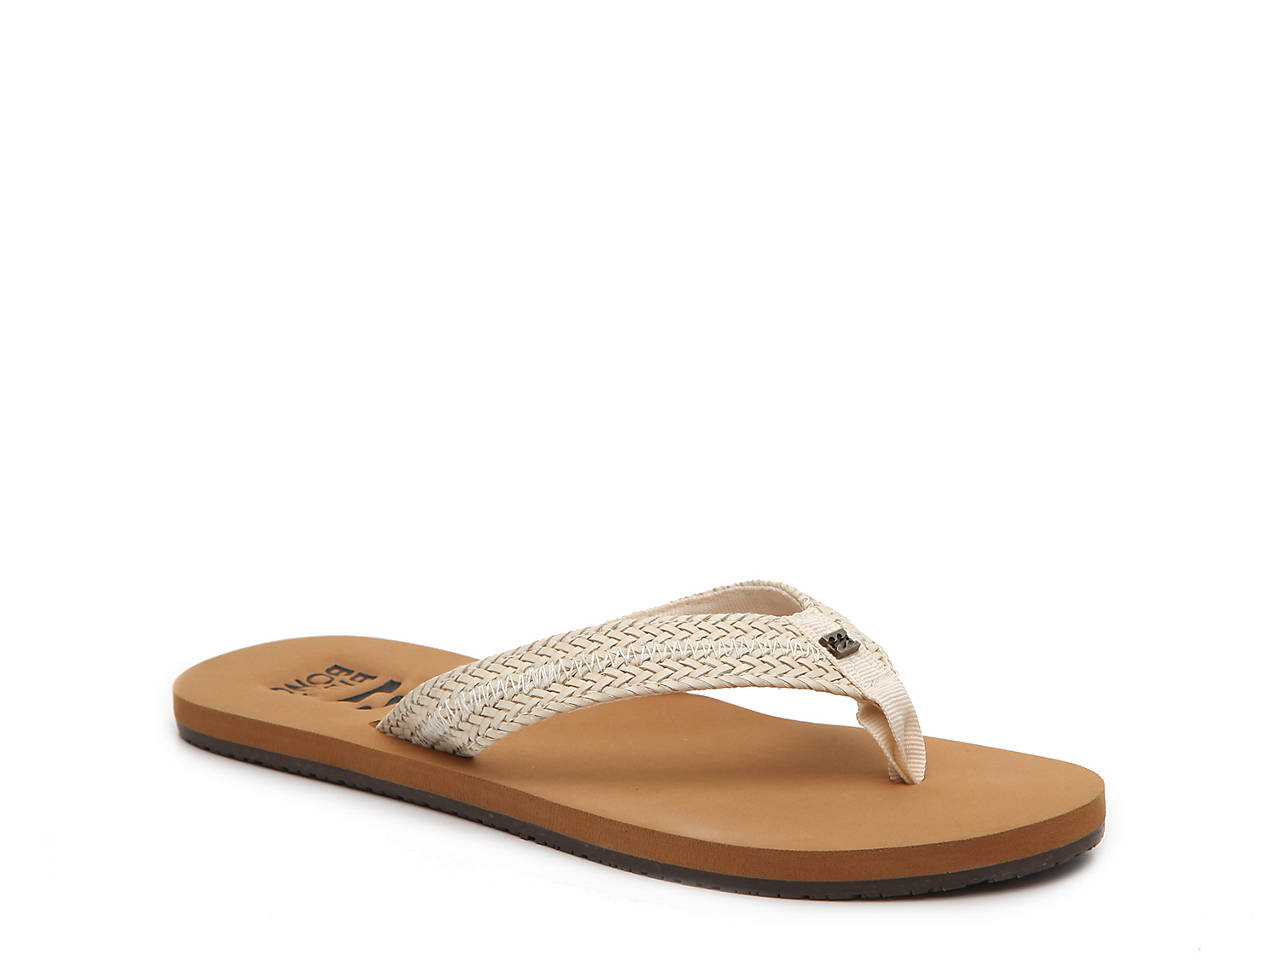 Kai Flip Flop by Billabong